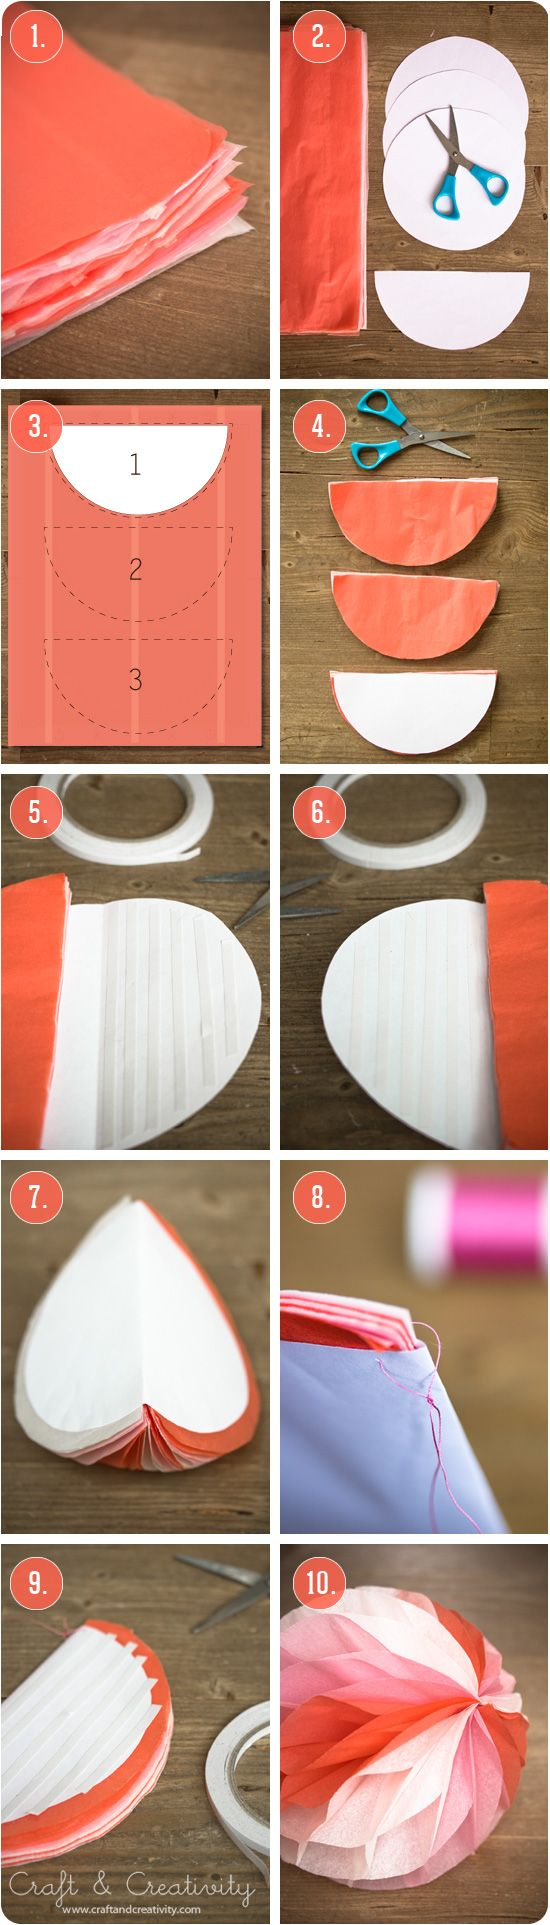 Tutorial: how to make your own honeycomb paper + party decorations {Craft & Creativity}: